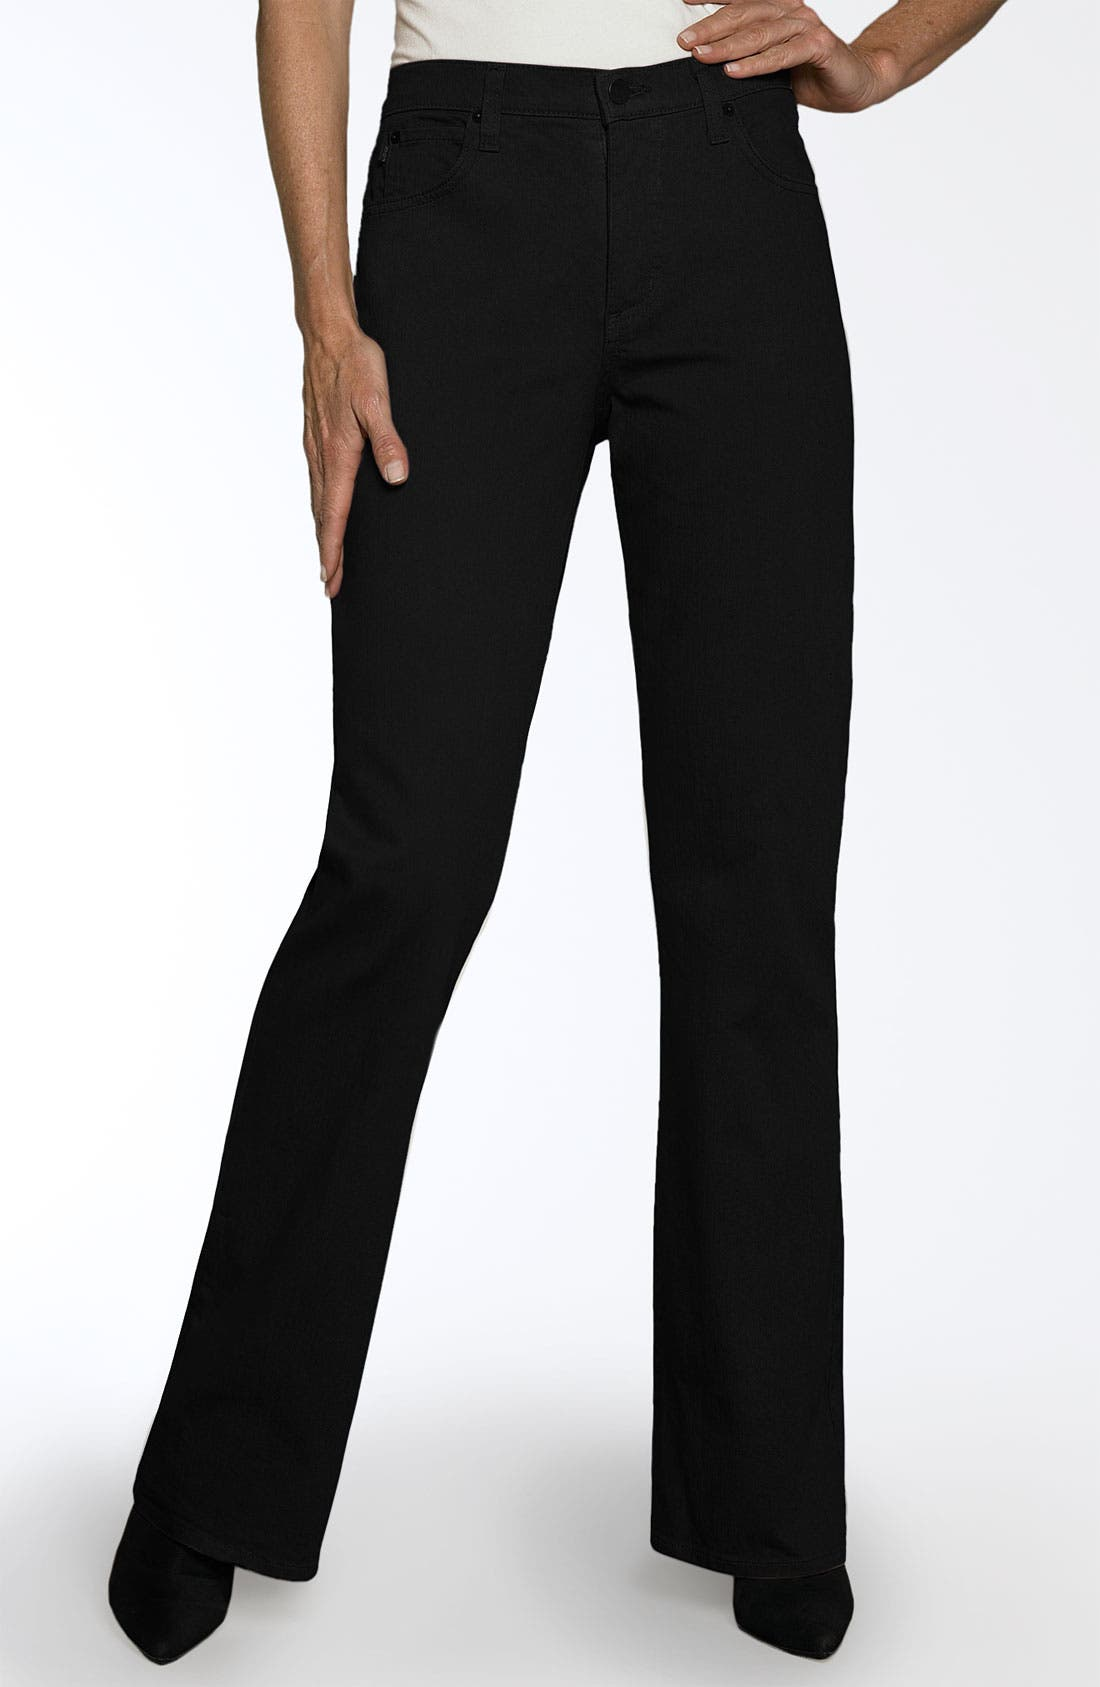 Alternate Image 1 Selected - NYDJ 'Sarah' Stretch Bootcut Jeans (Regular & Petite)